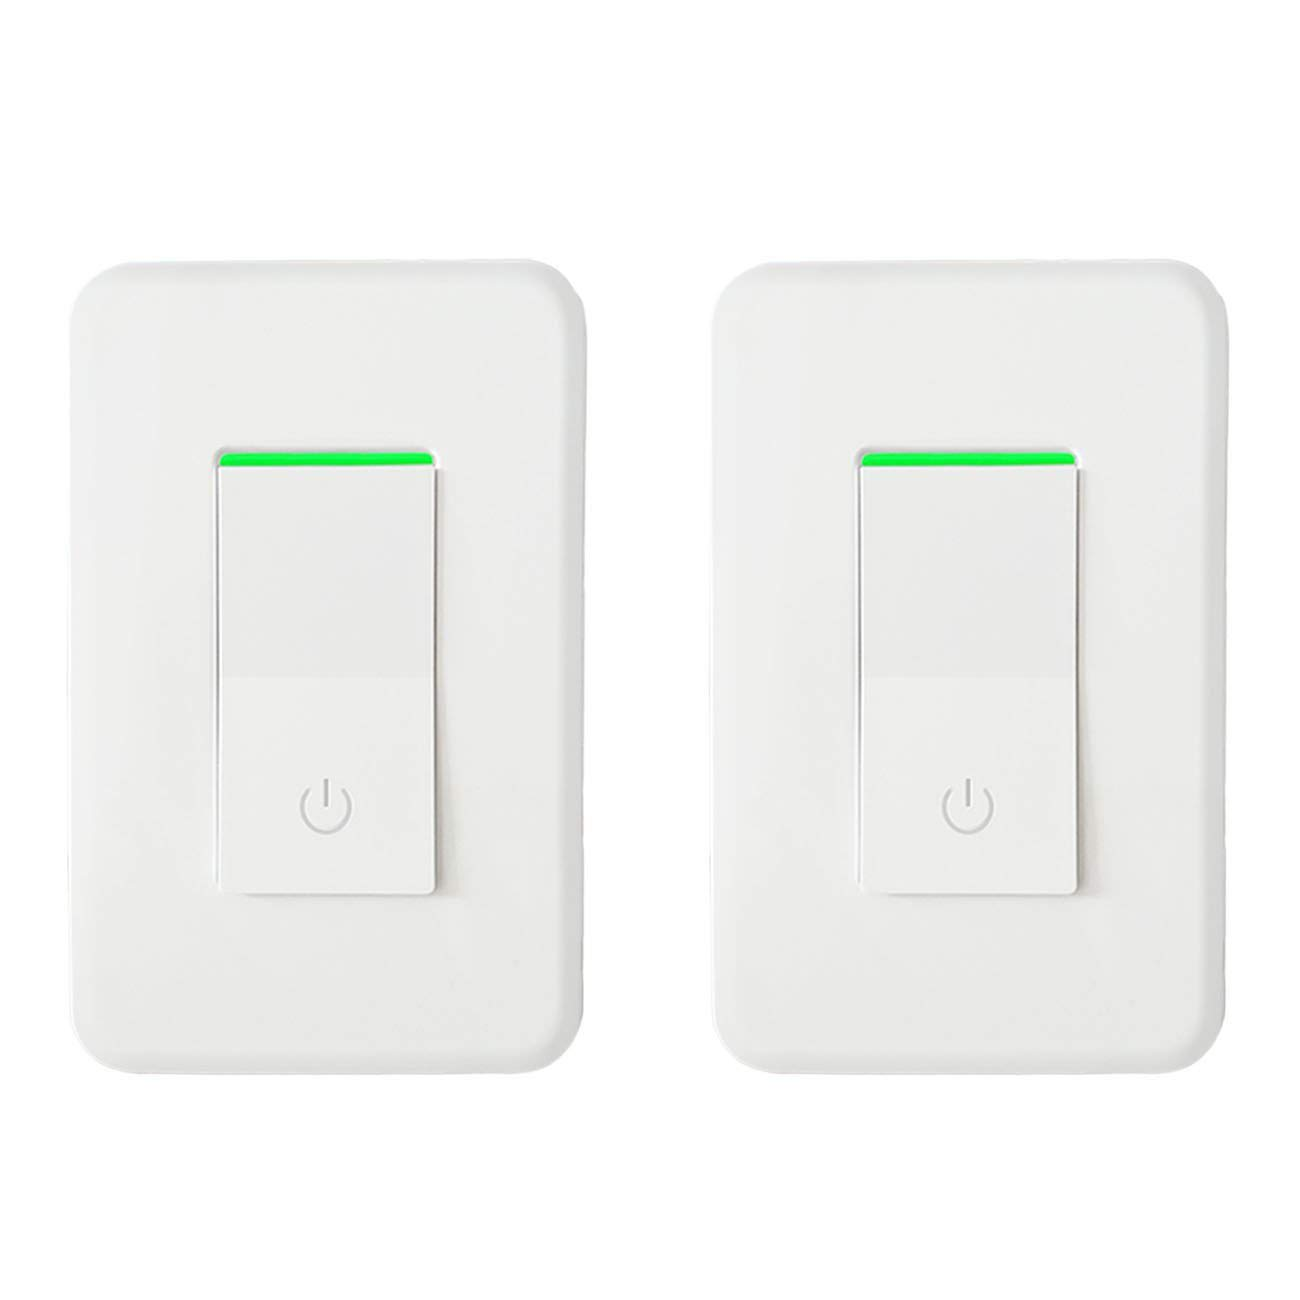 Likewise On Off Push Button Switch Circuit Timer Schematic Symbol Wifi Smart Light Wireless Wall Remote Control 2 Pack Compatible With Alexa Google Assistant Ifttt No Hub Required Single Pole Only